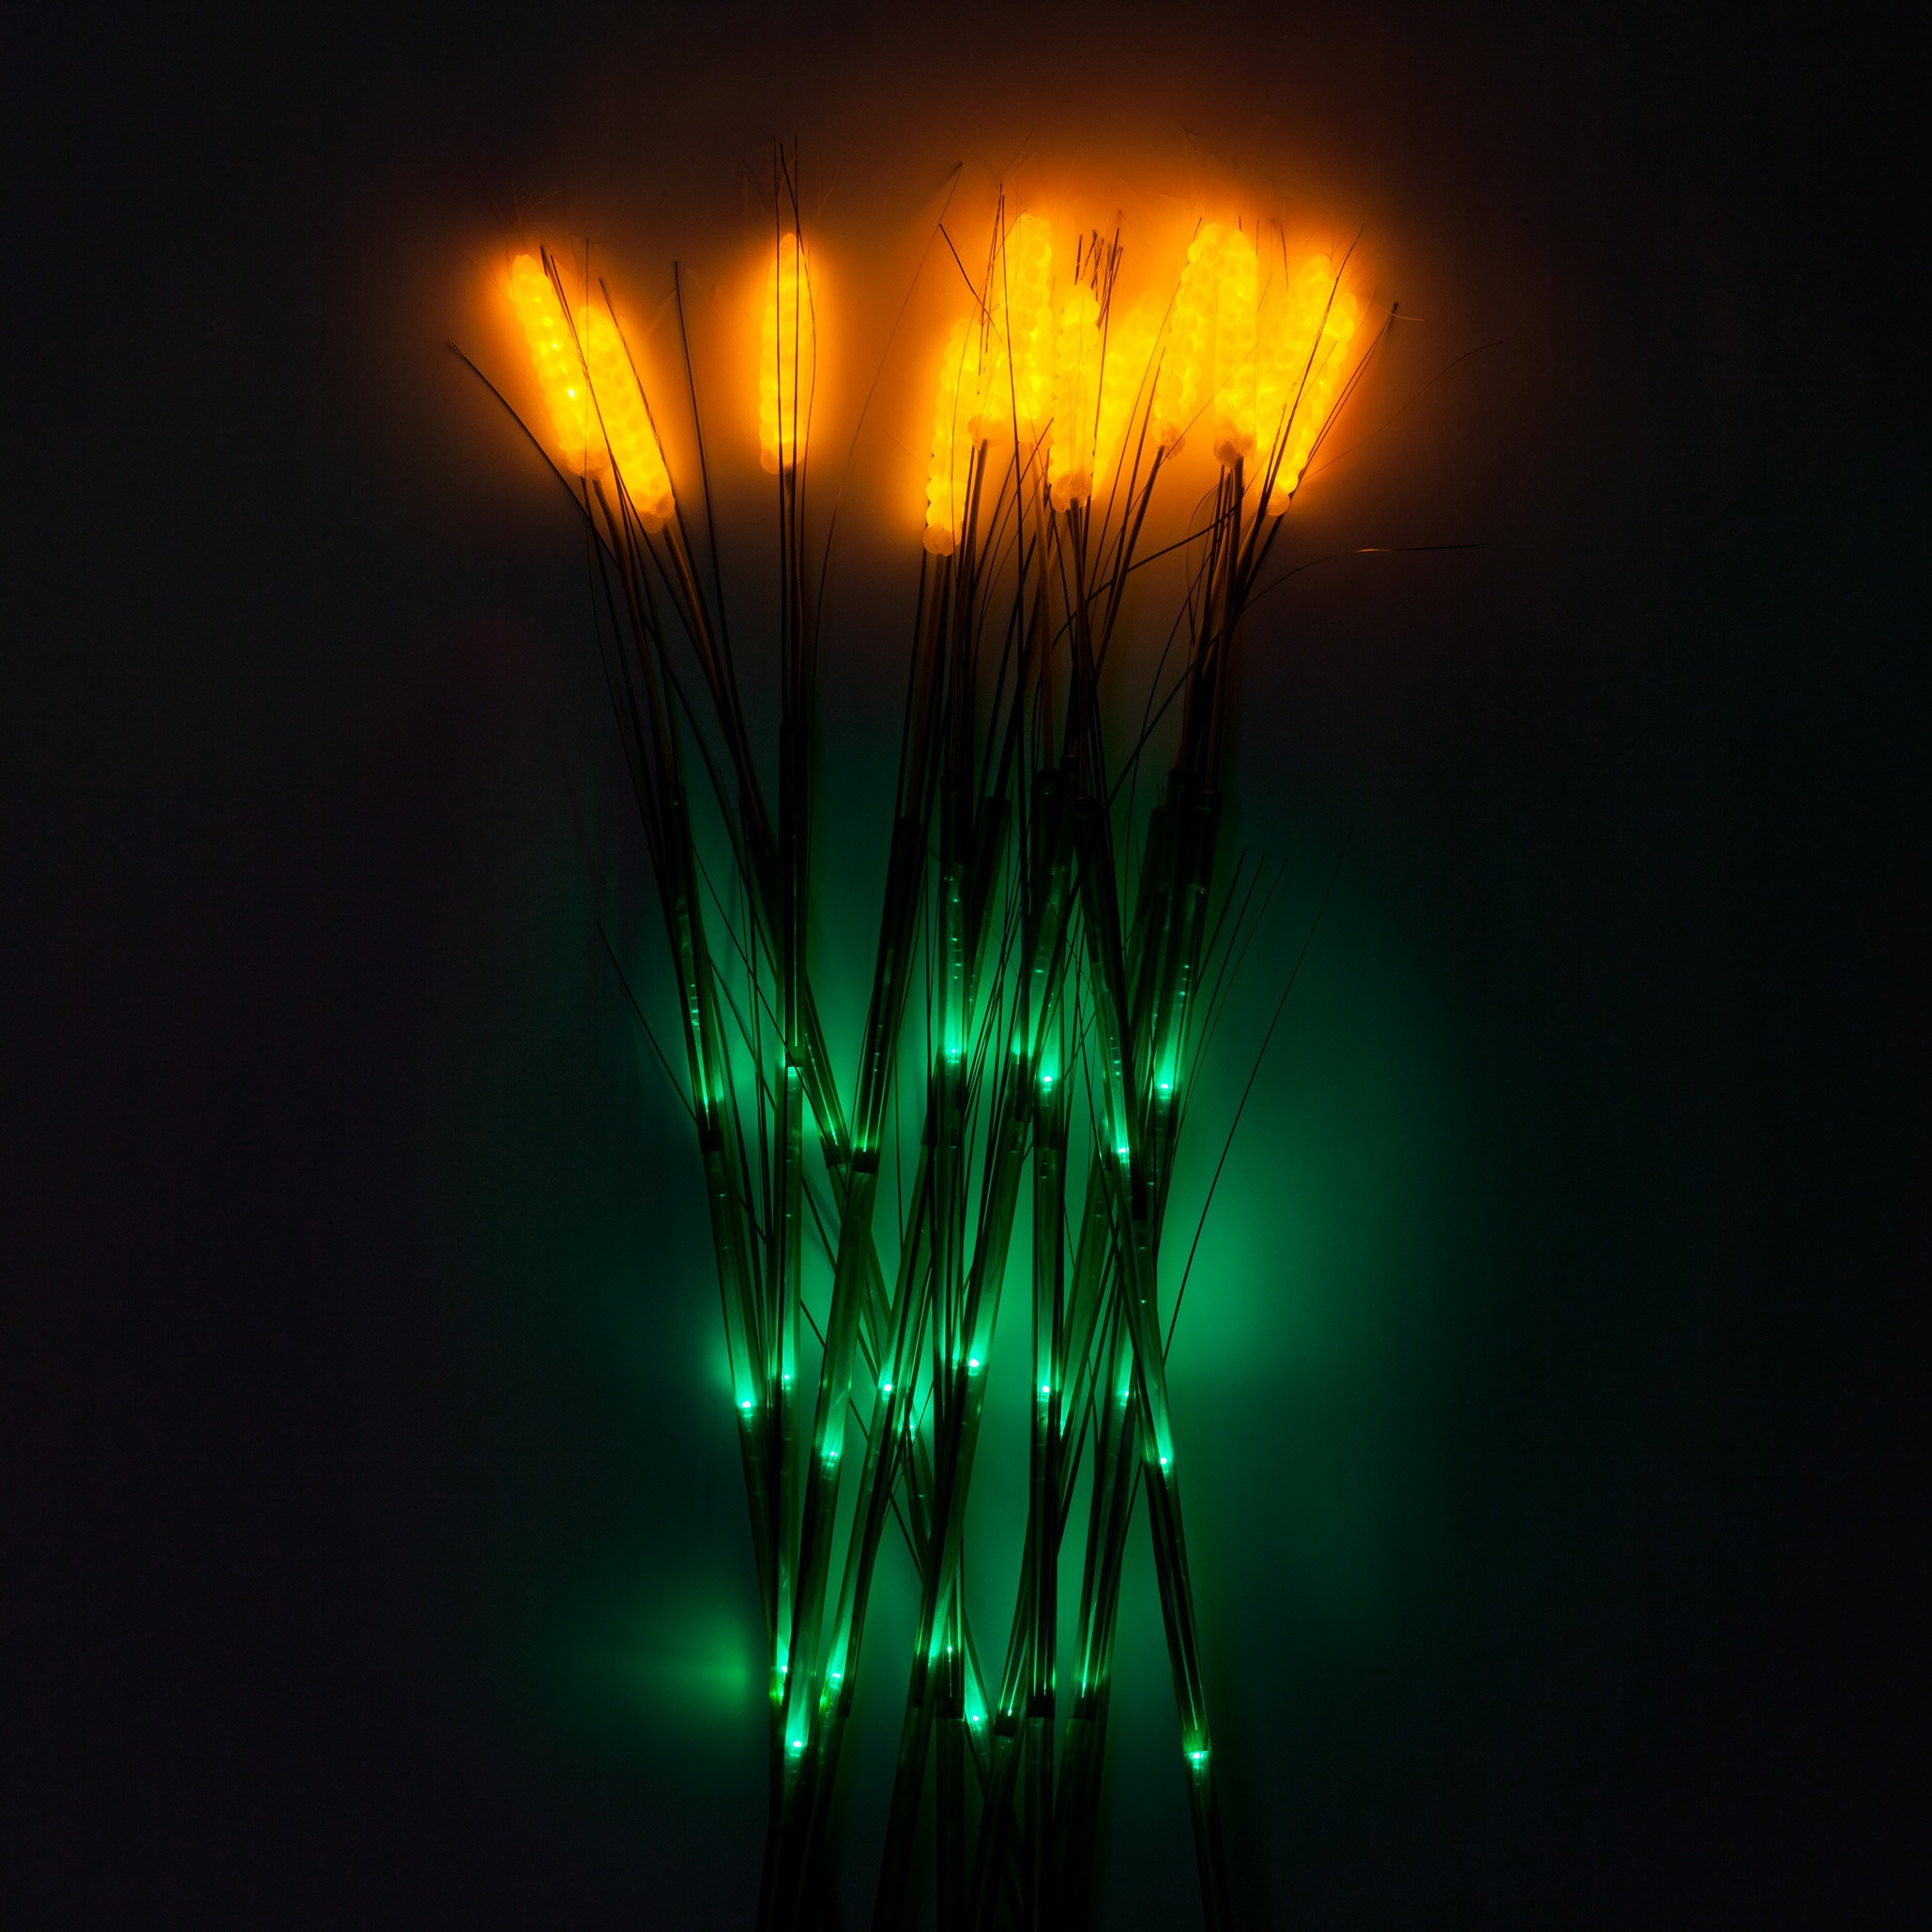 LED Wheat Stalks